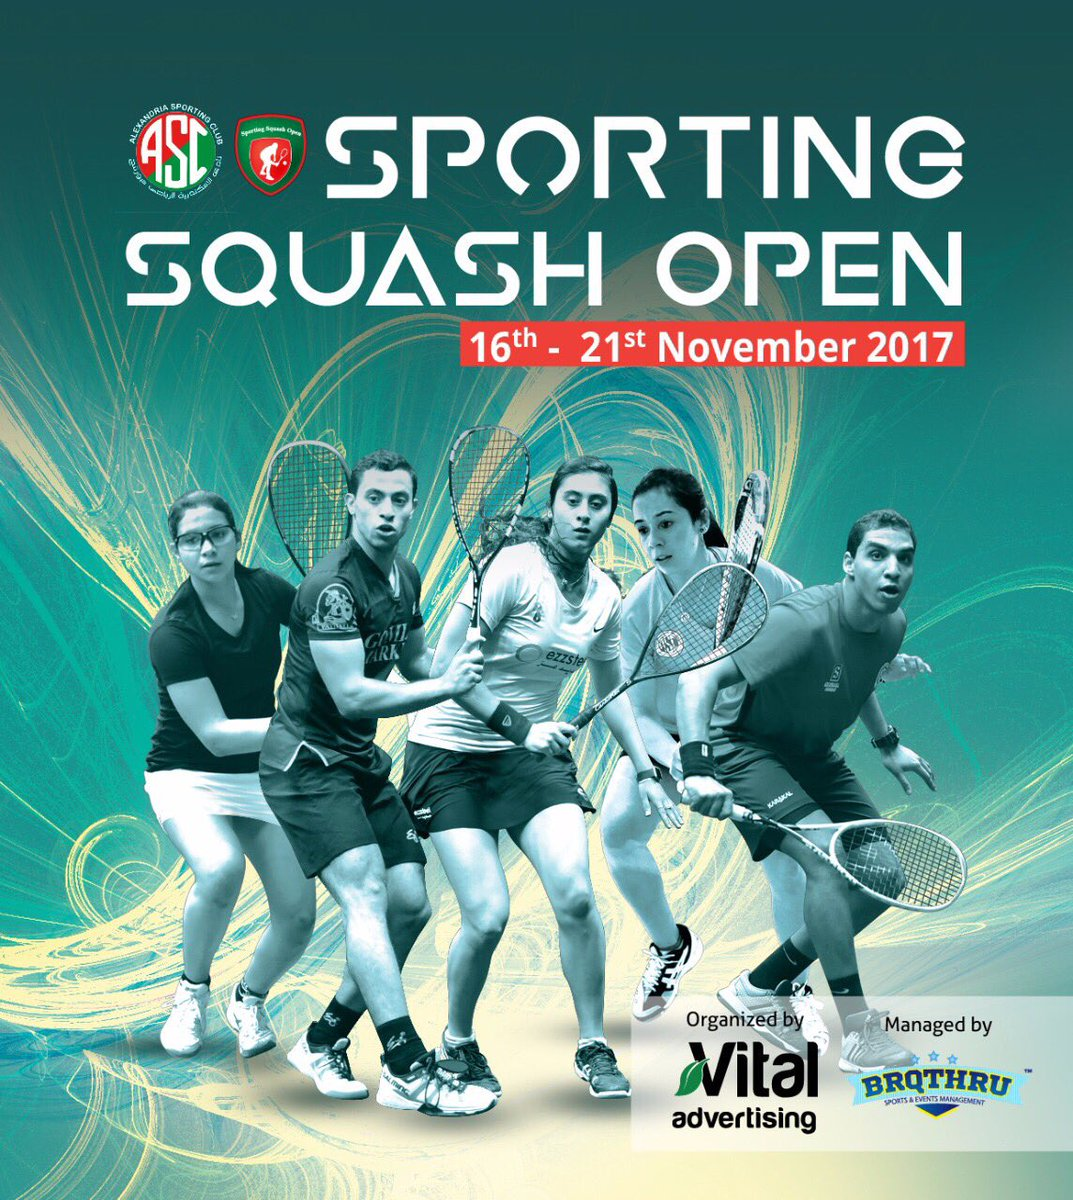 We're proud to announce that we're the managing partner for the upcoming @sportingsquashopen in Alexandria,Egypt don't miss the action from the 16th till the 21st of November #brqthru #squash #asc